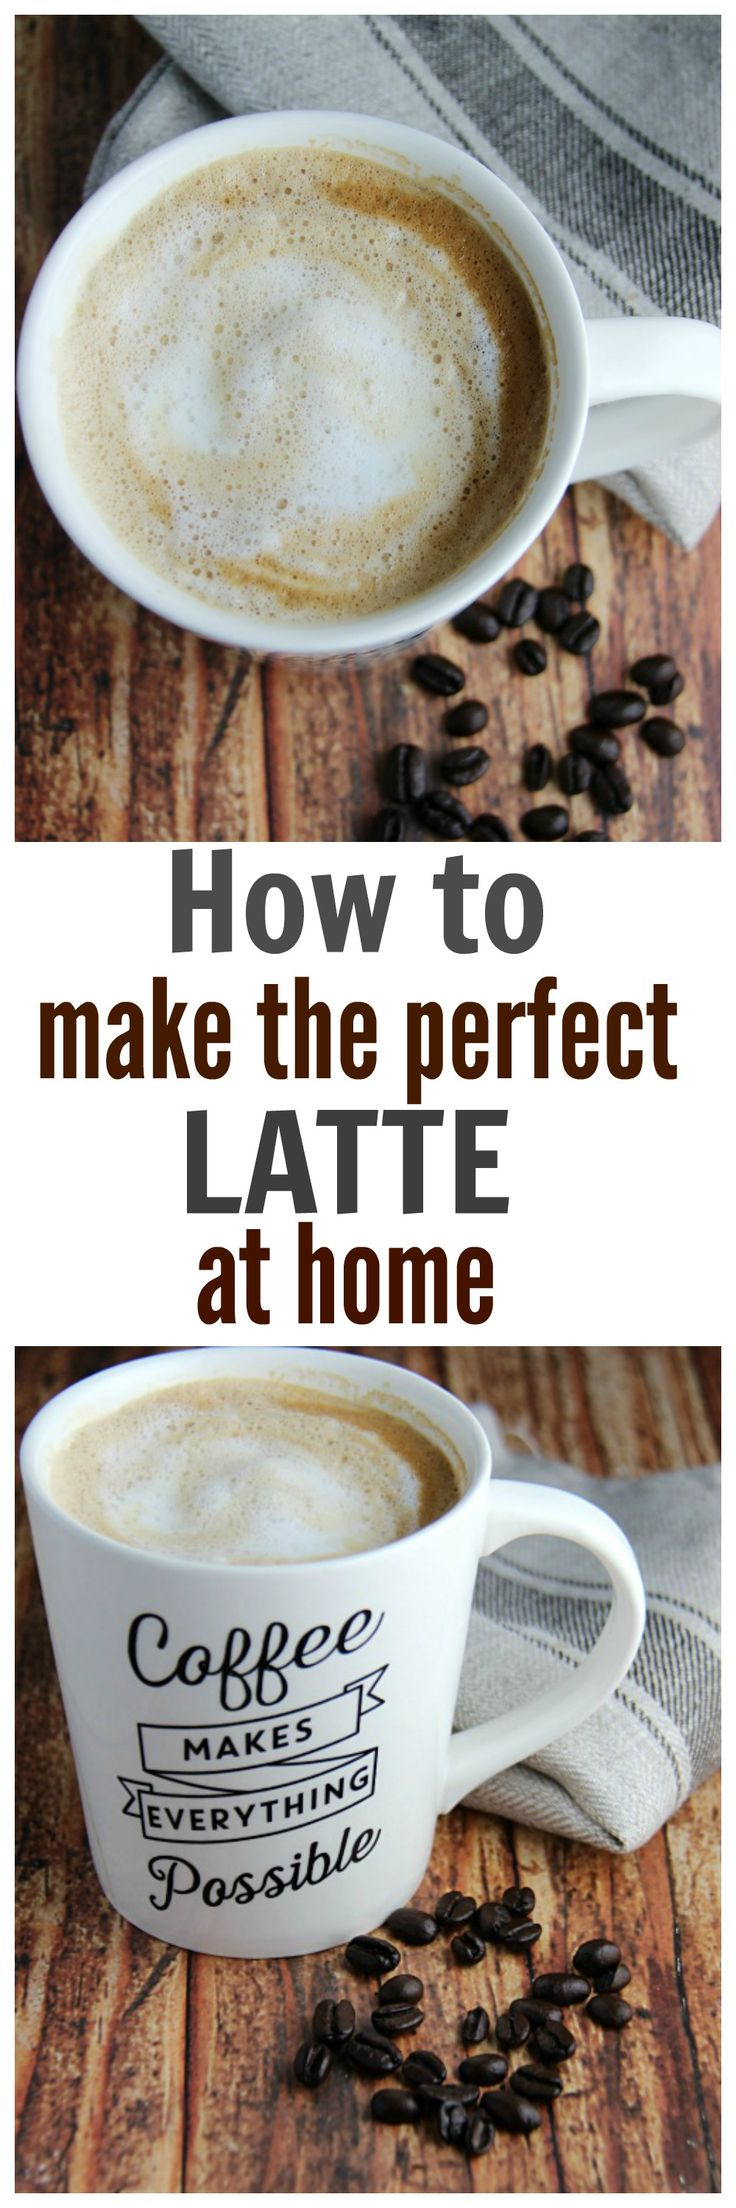 Breville Barista Express/how to make the perfect latte at home